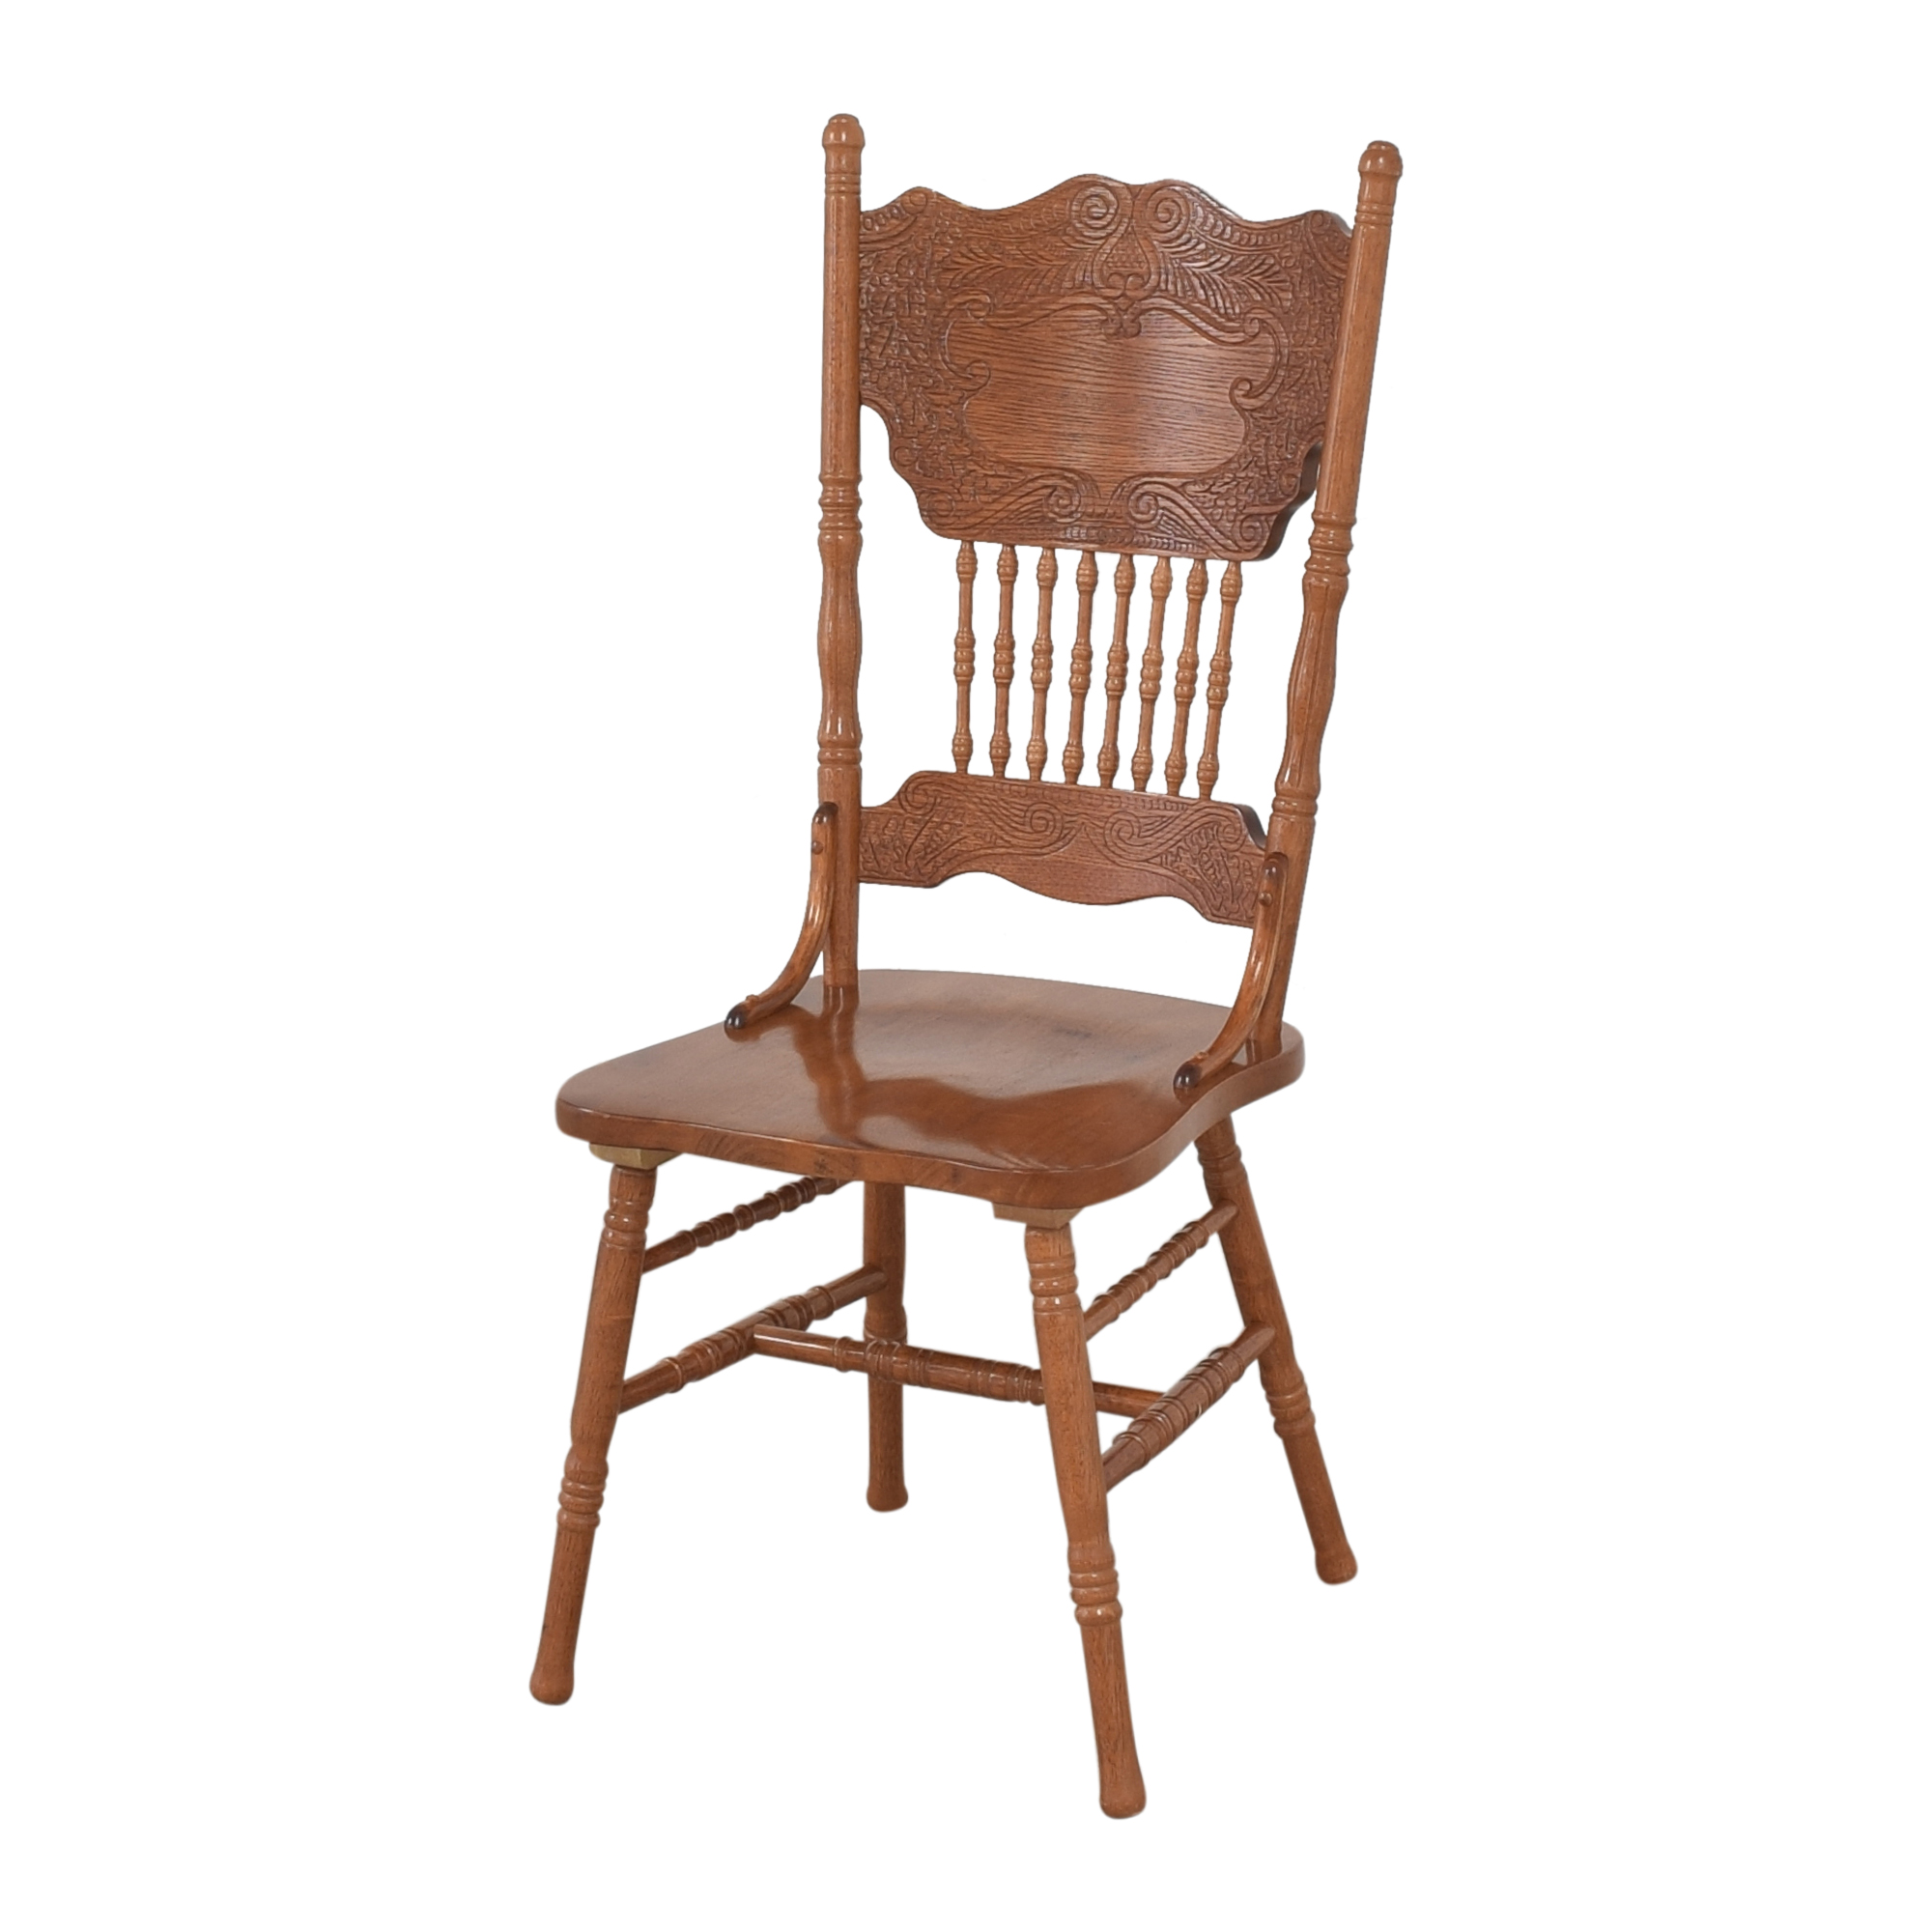 Poundex Poundex Pressback Dining Chairs on sale